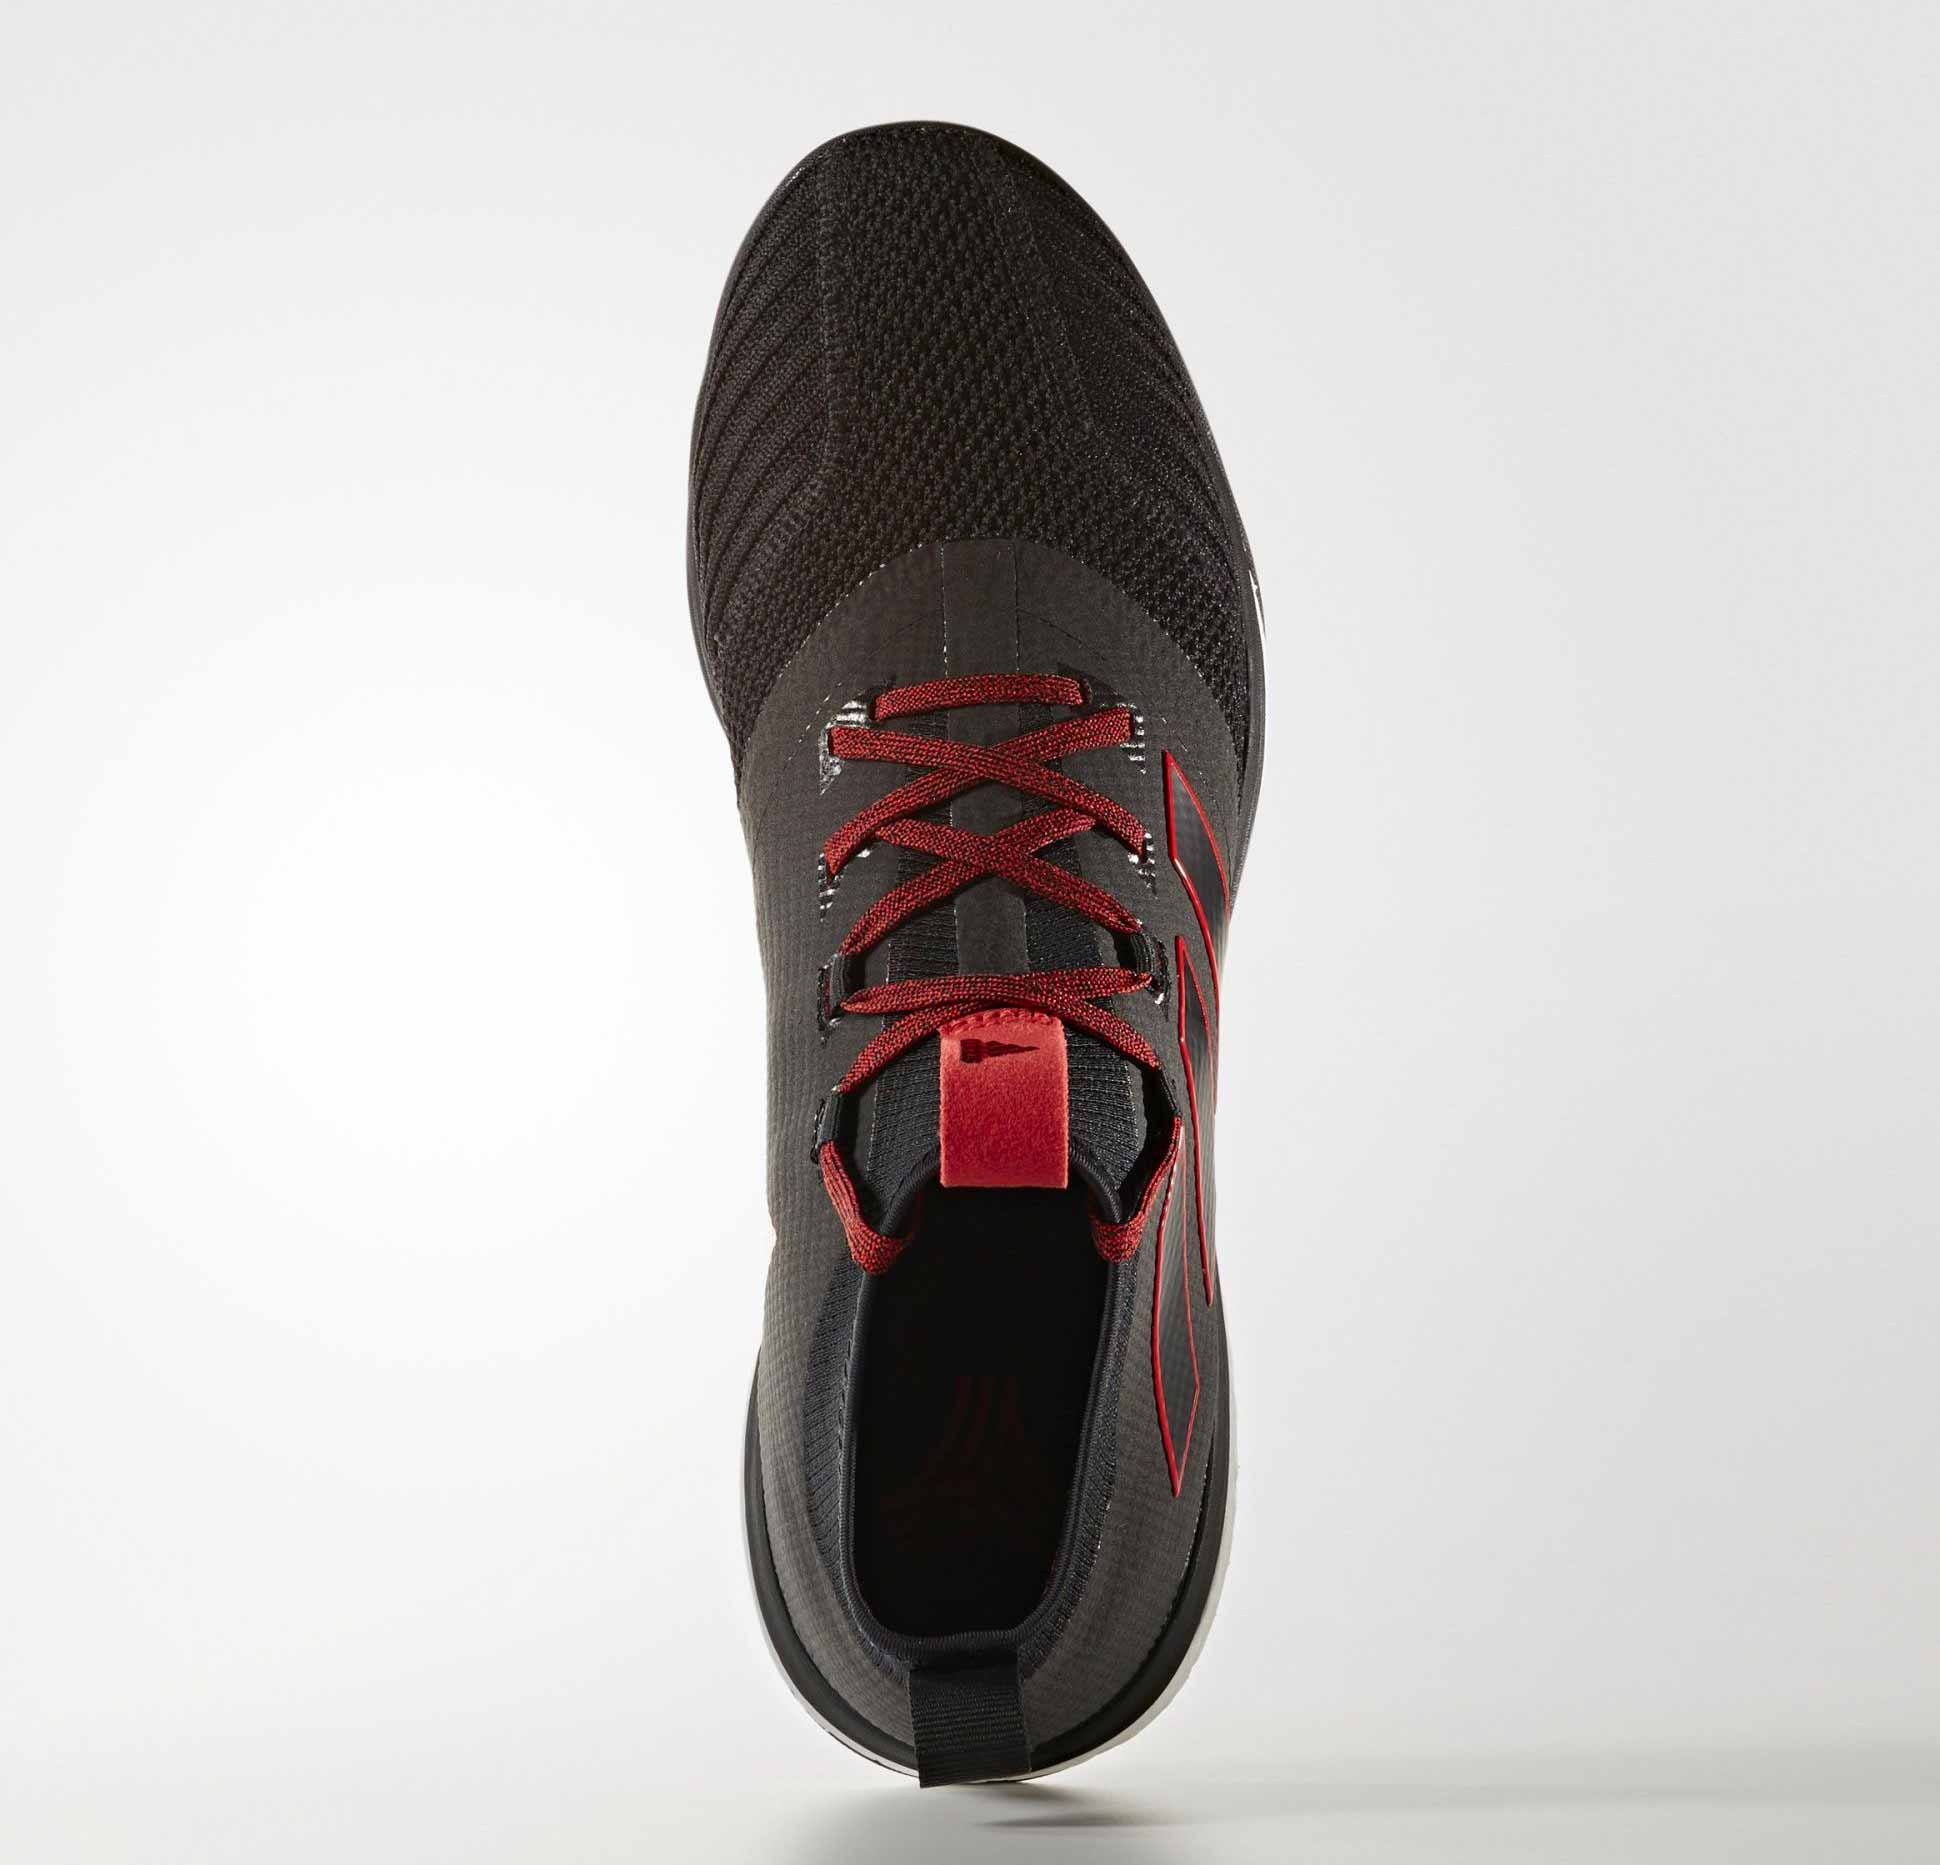 online store 91444 e5430 adidas ACE Tango 17.1 'Core Black/Red' - SoccerBible